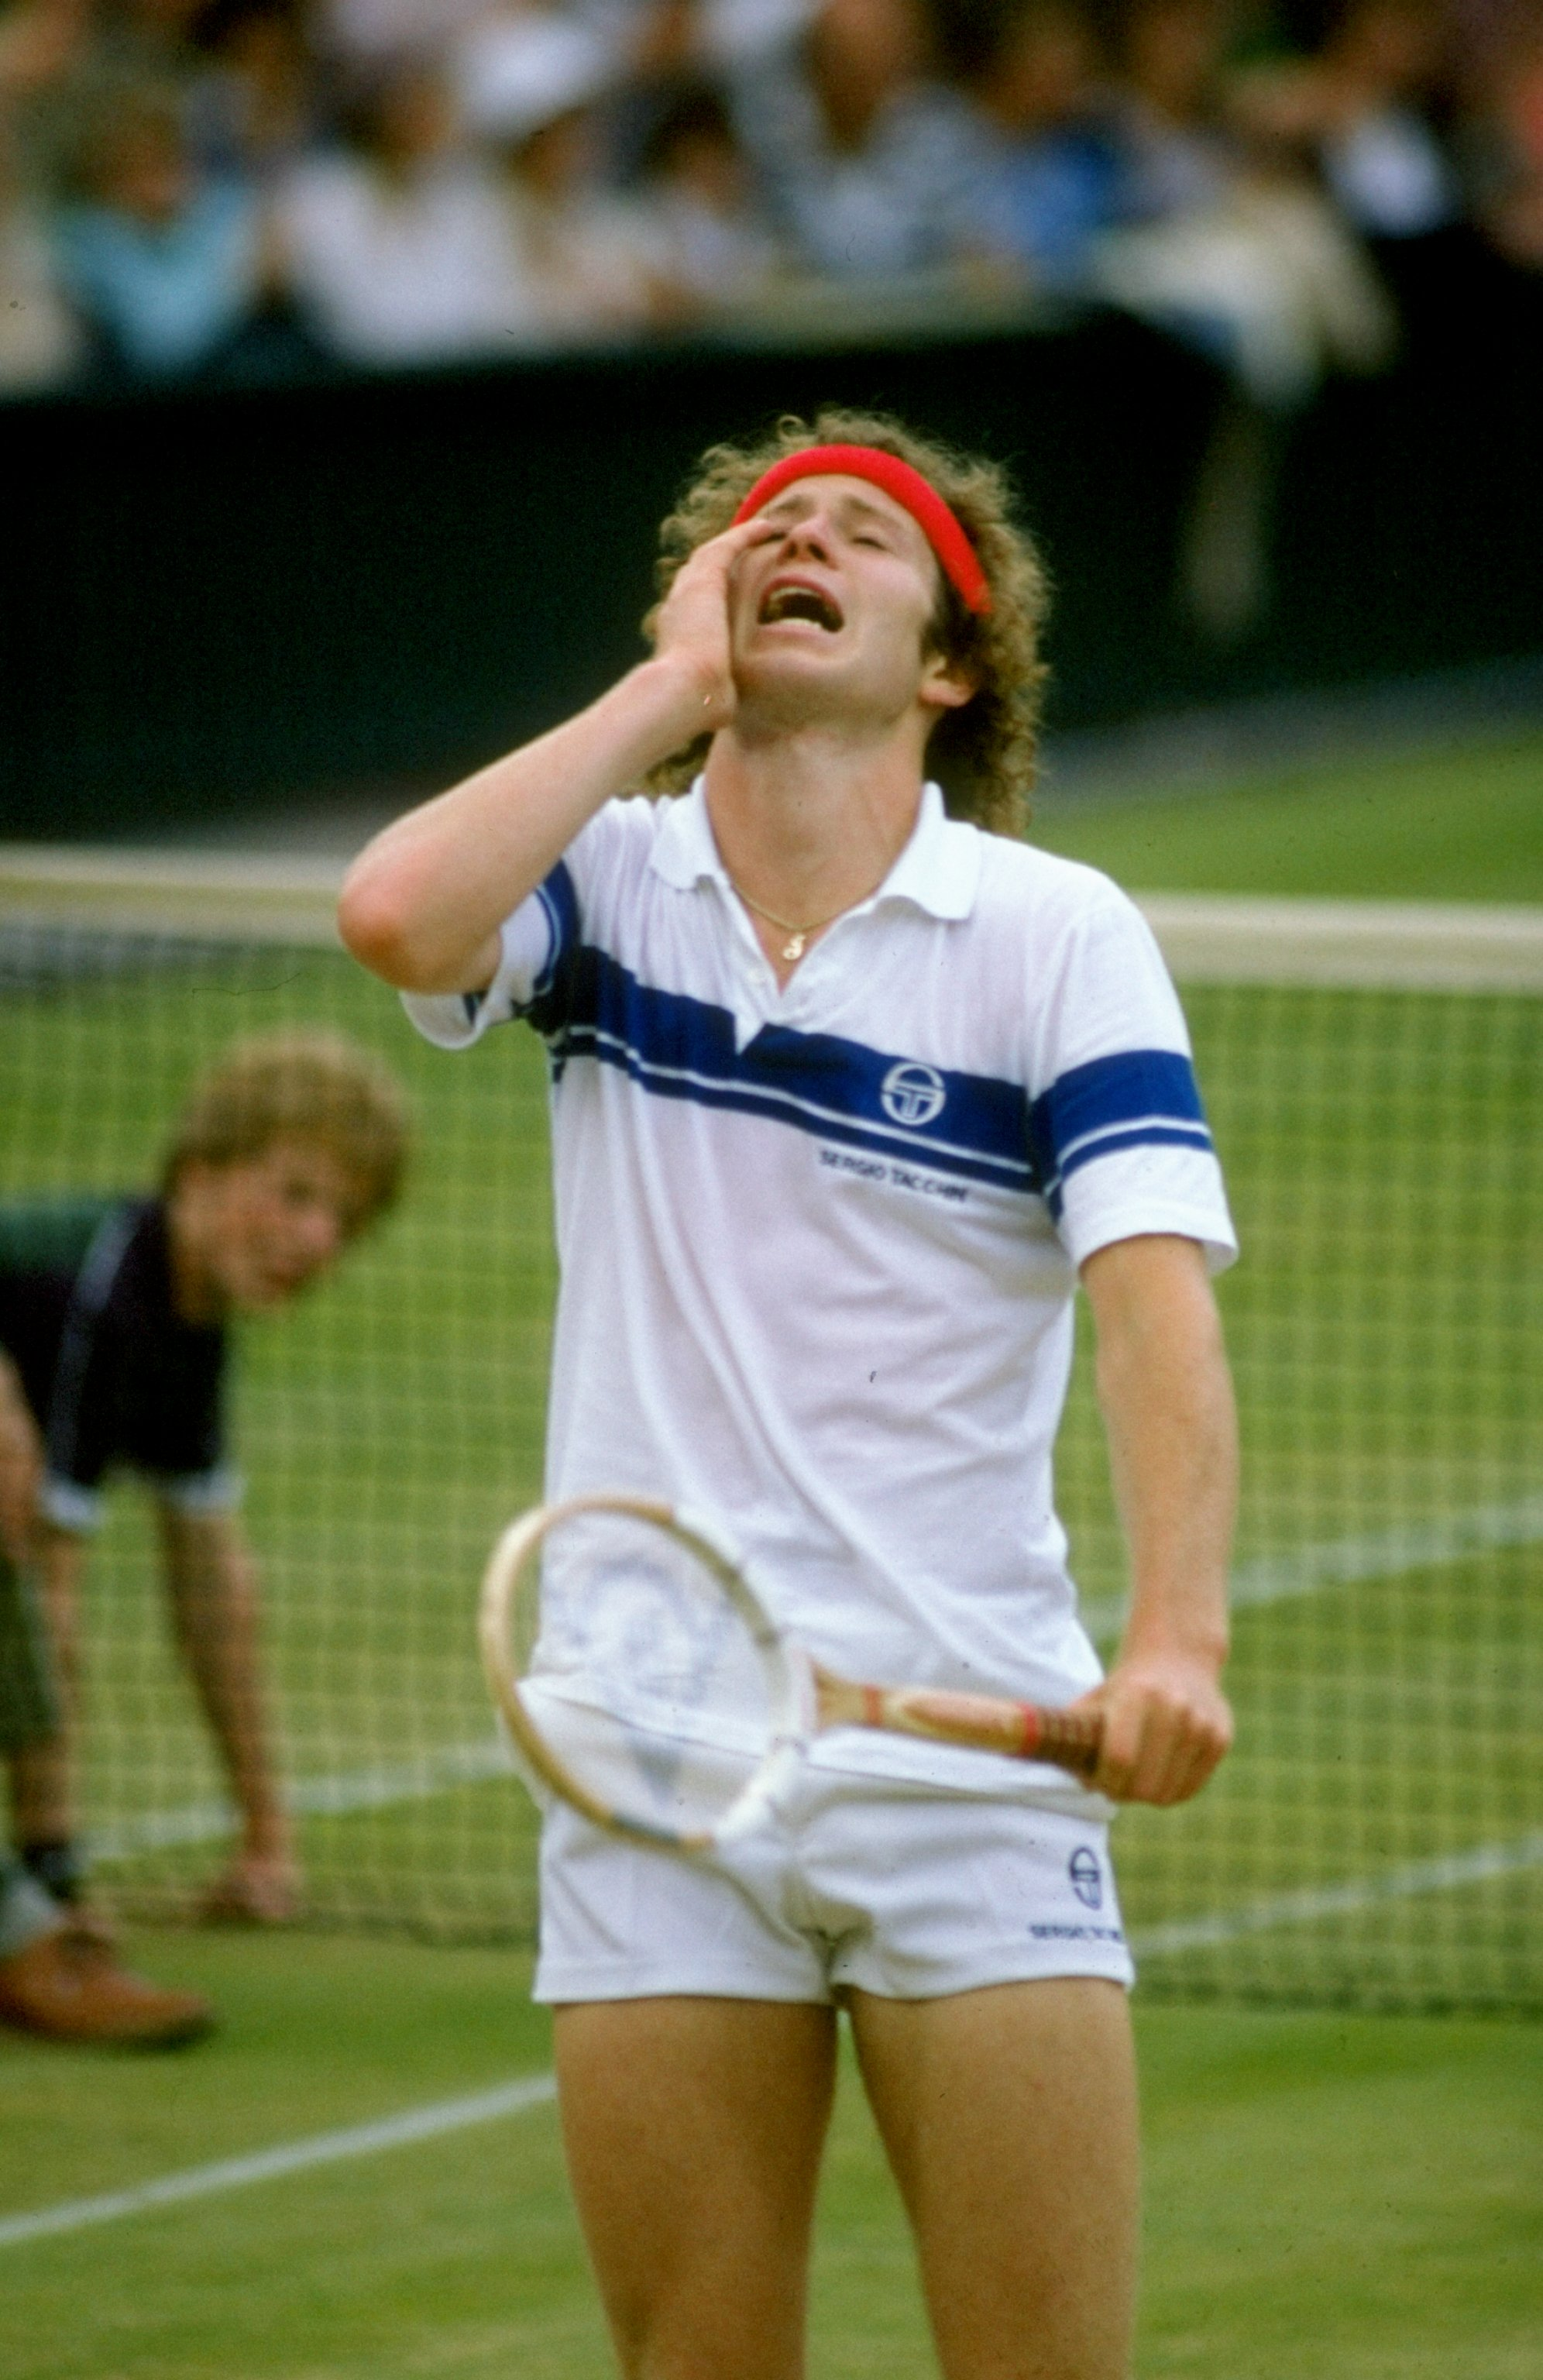 Tennis Ranking The Best Quotes Of All Time Bleacher Report Latest News Videos And Highlights